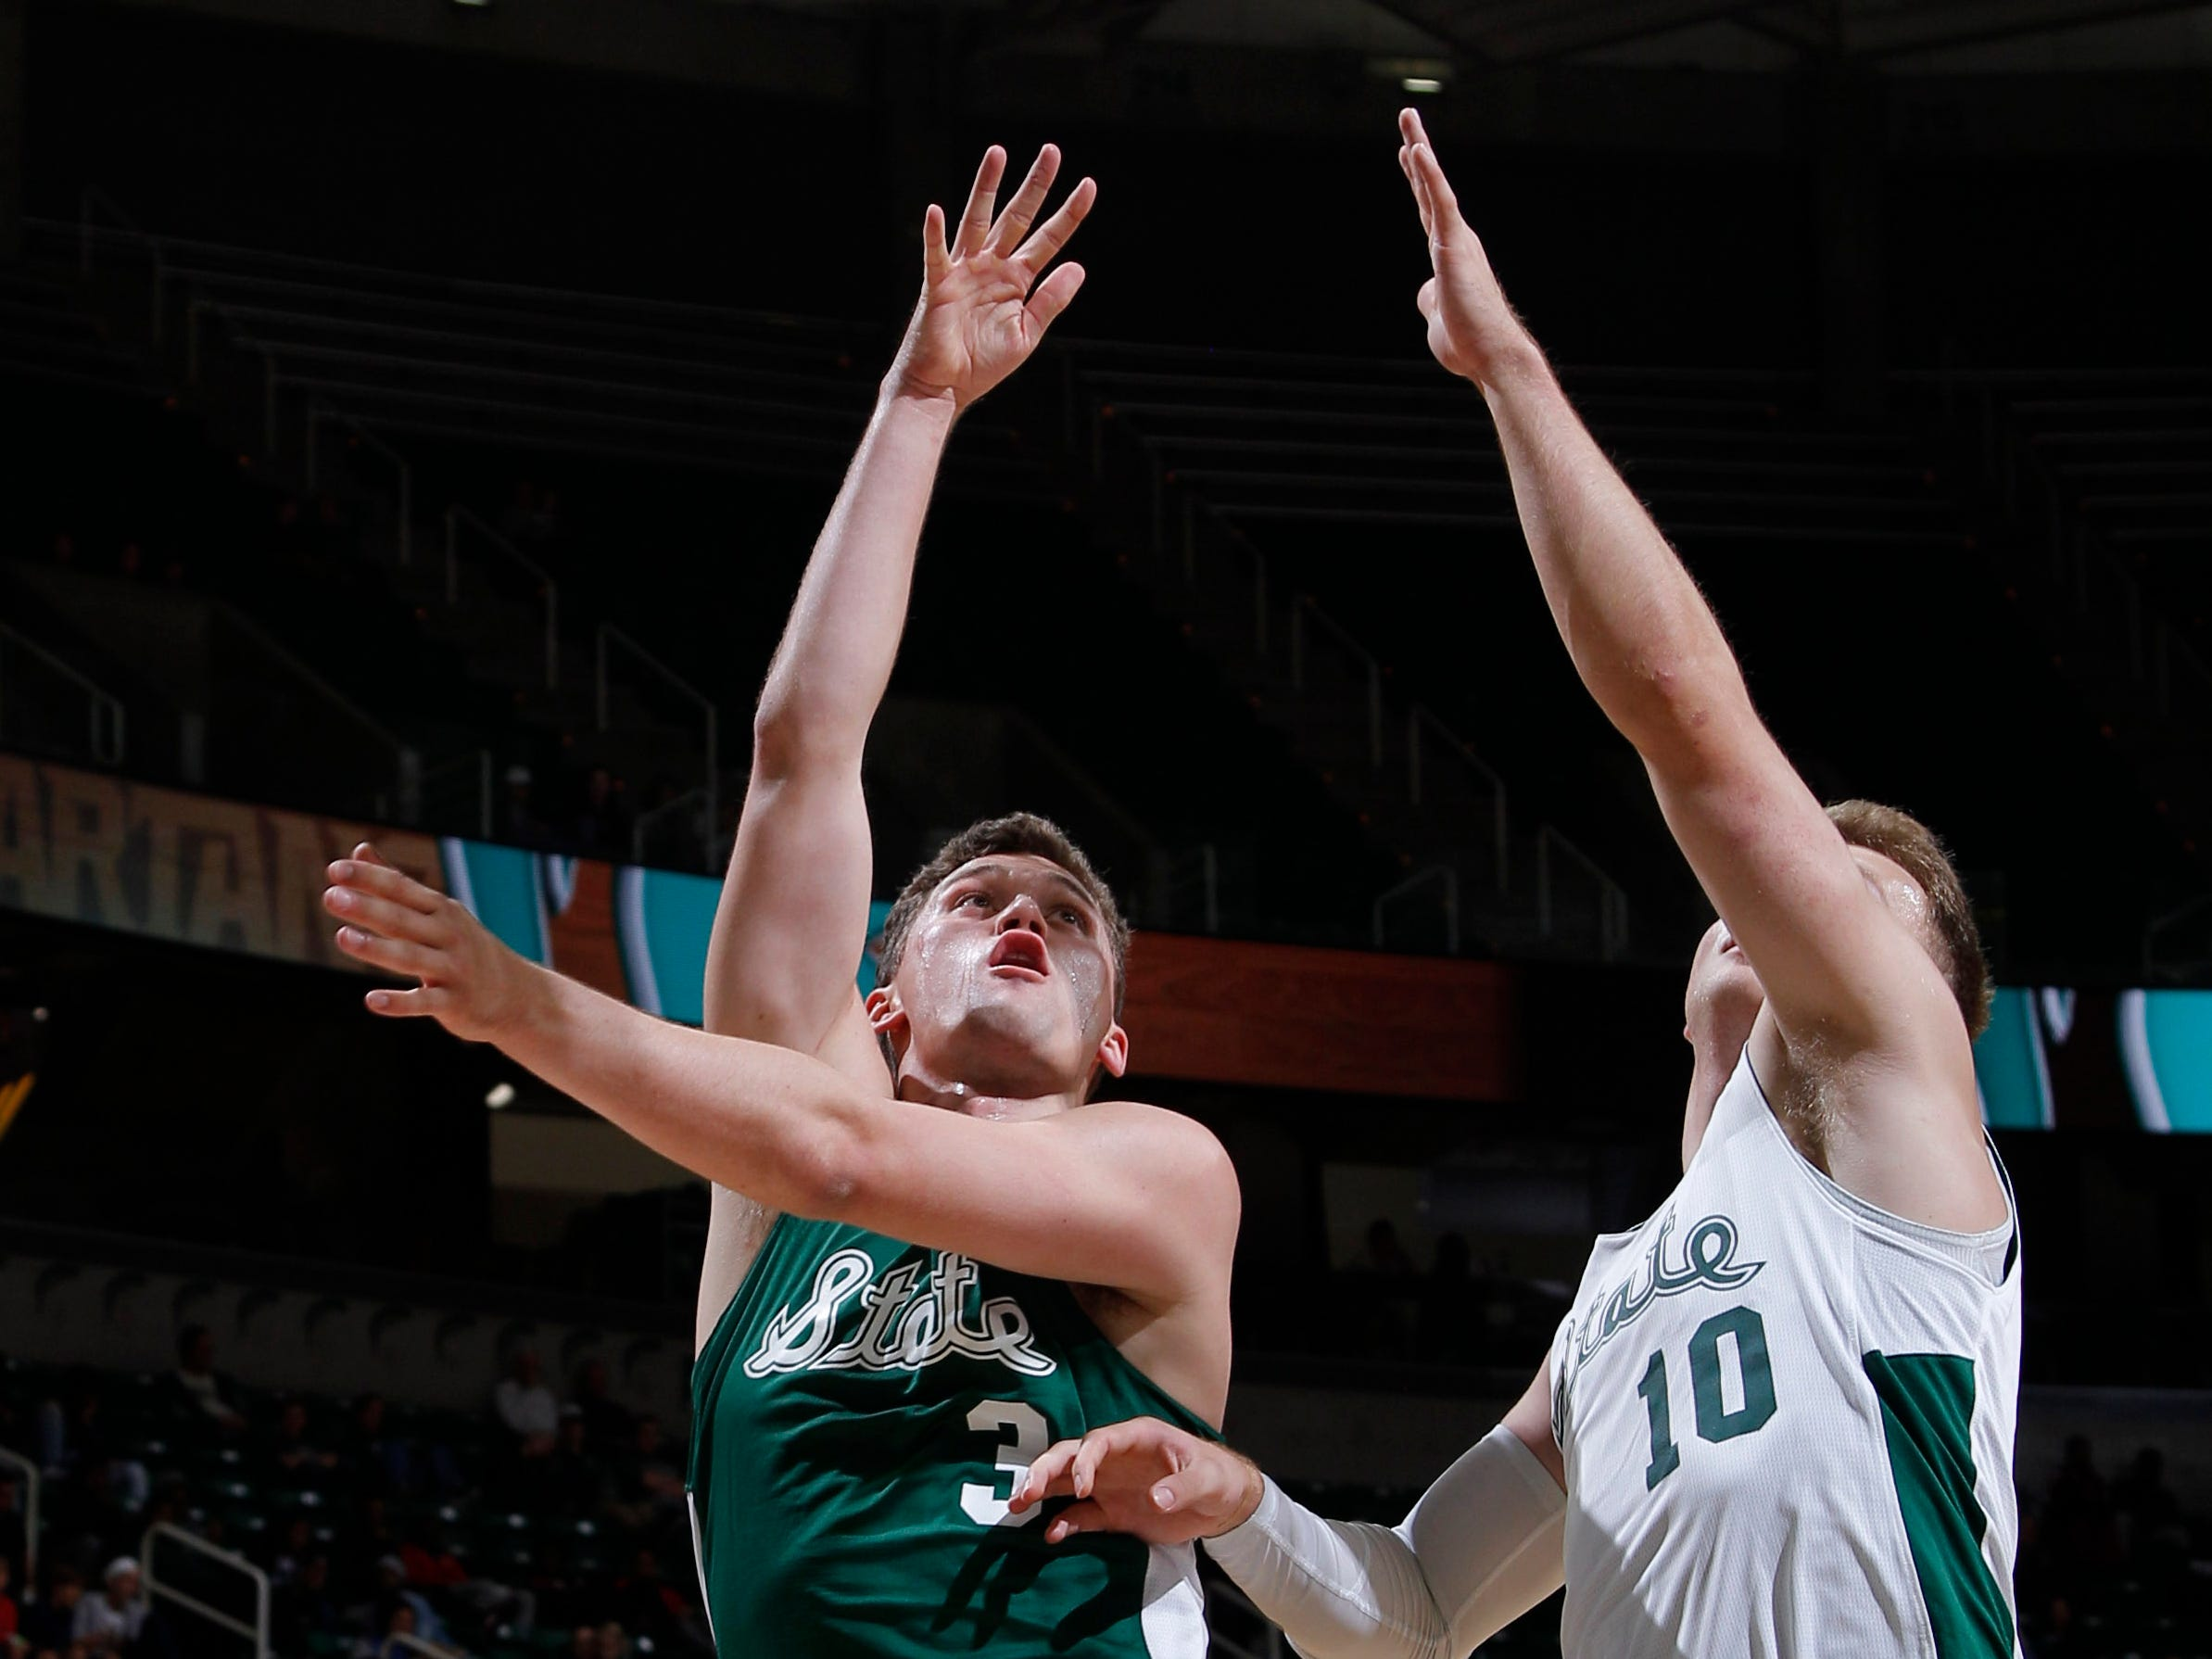 Michigan State's Foster Loyer, left, shoots against Jack Hoiberg at MSU Madness, Saturday, Oct. 6, 2018, in East Lansing, Mich.